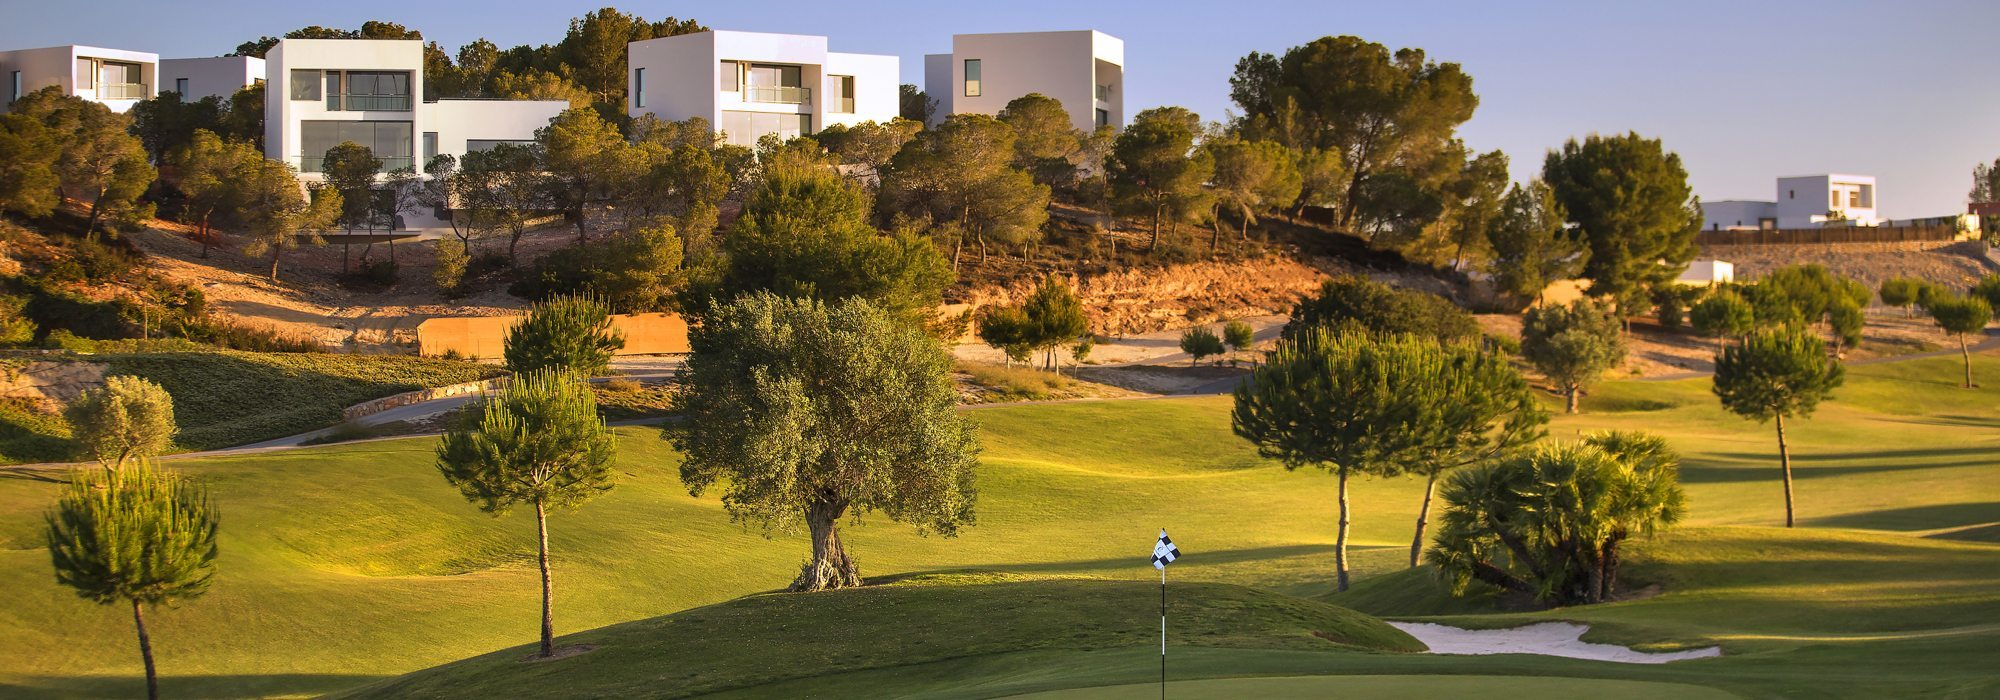 Detached Villas – Granado Community – Las Colinas Golf & Country Club